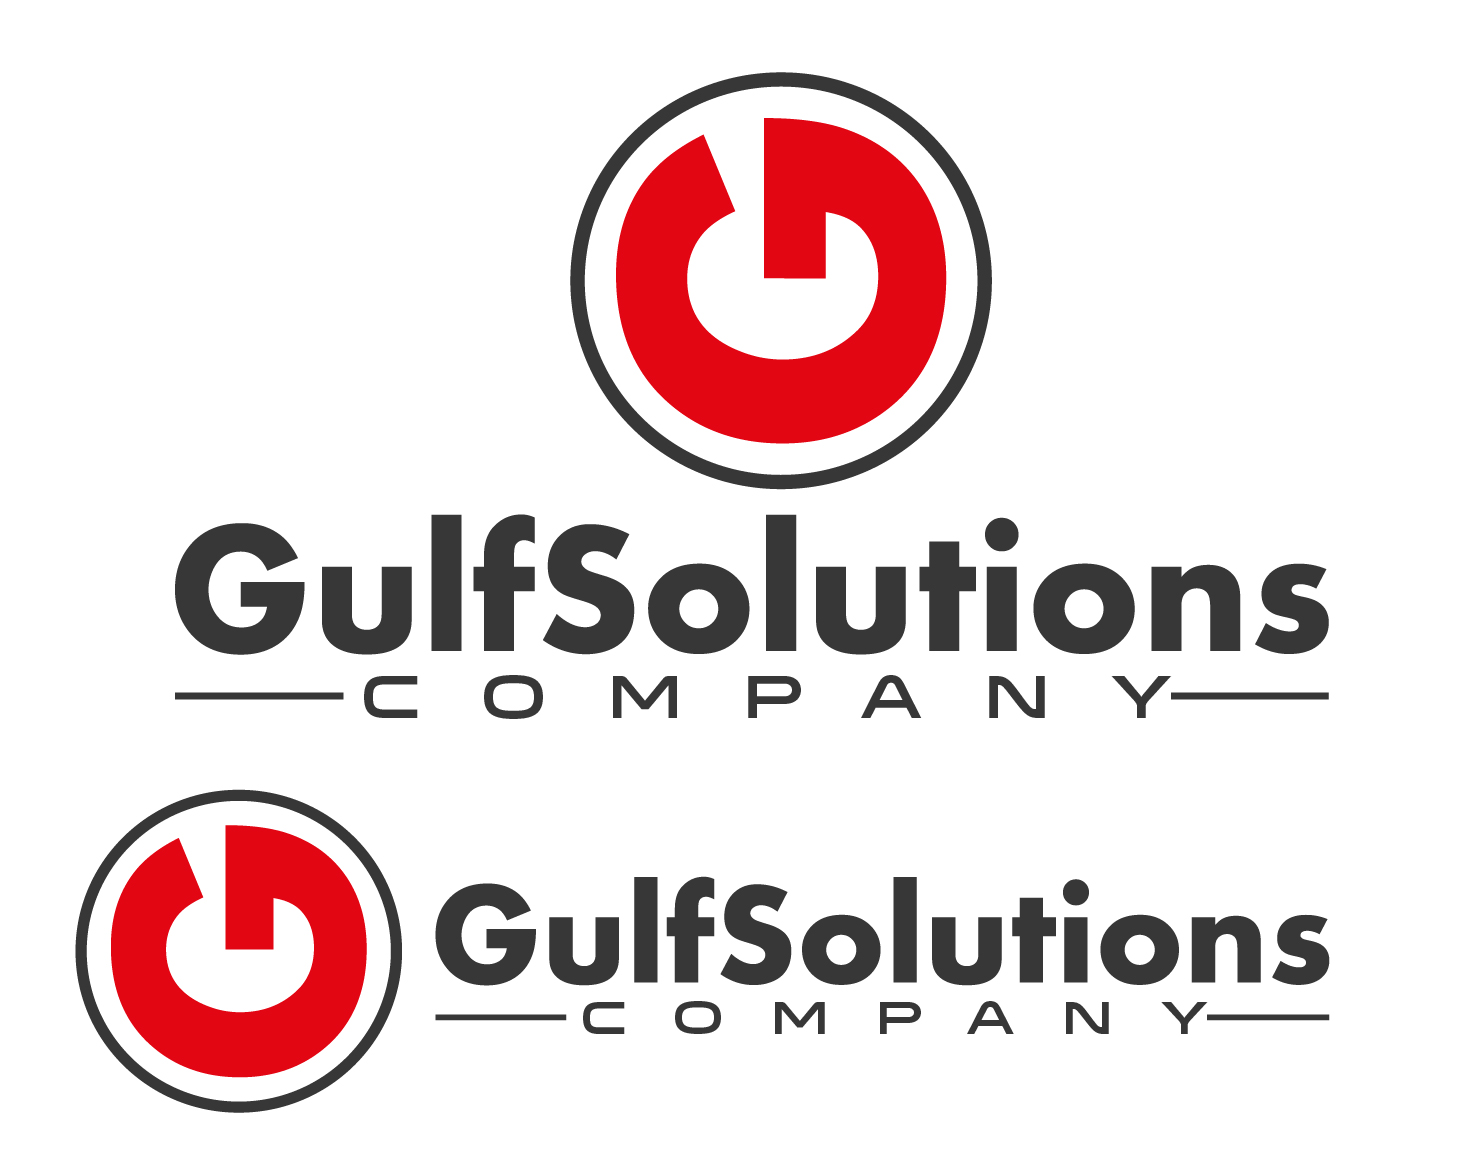 Logo Design by VENTSISLAV KOVACHEV - Entry No. 48 in the Logo Design Contest New Logo Design for Gulf solutions company.